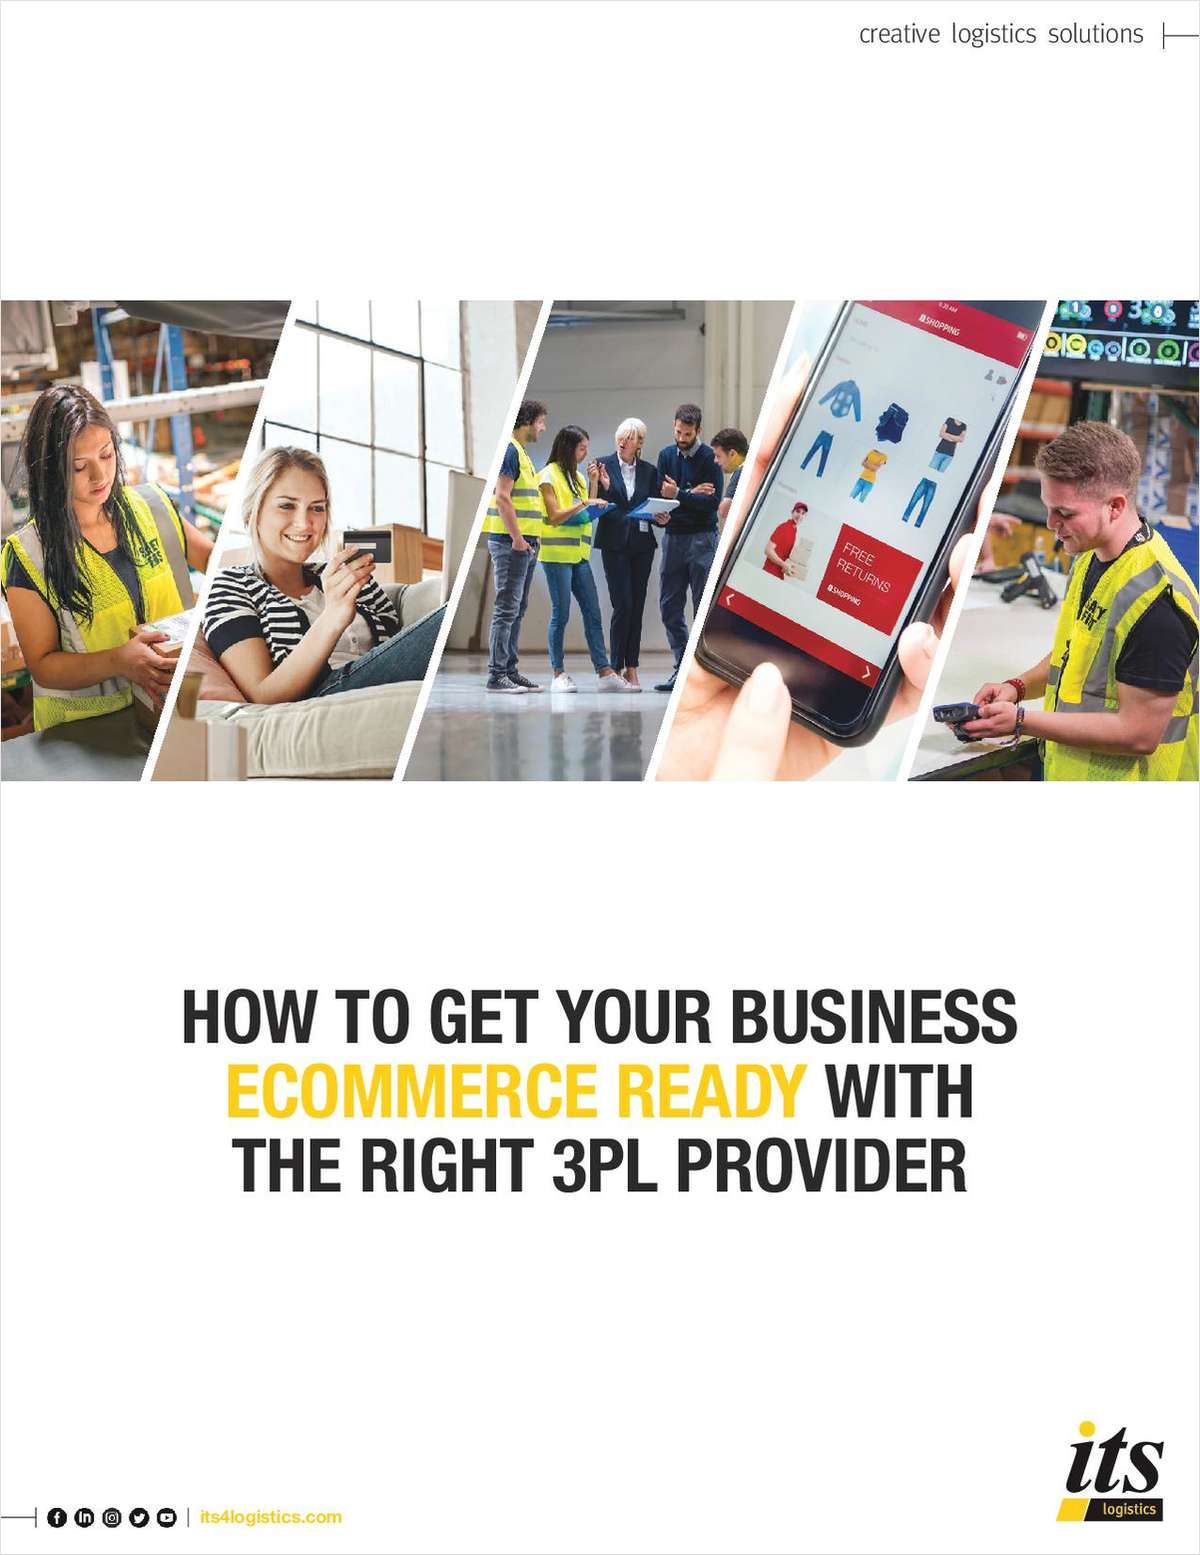 How to Get Your Business Ecommerce Ready with the Right 3PL Provider